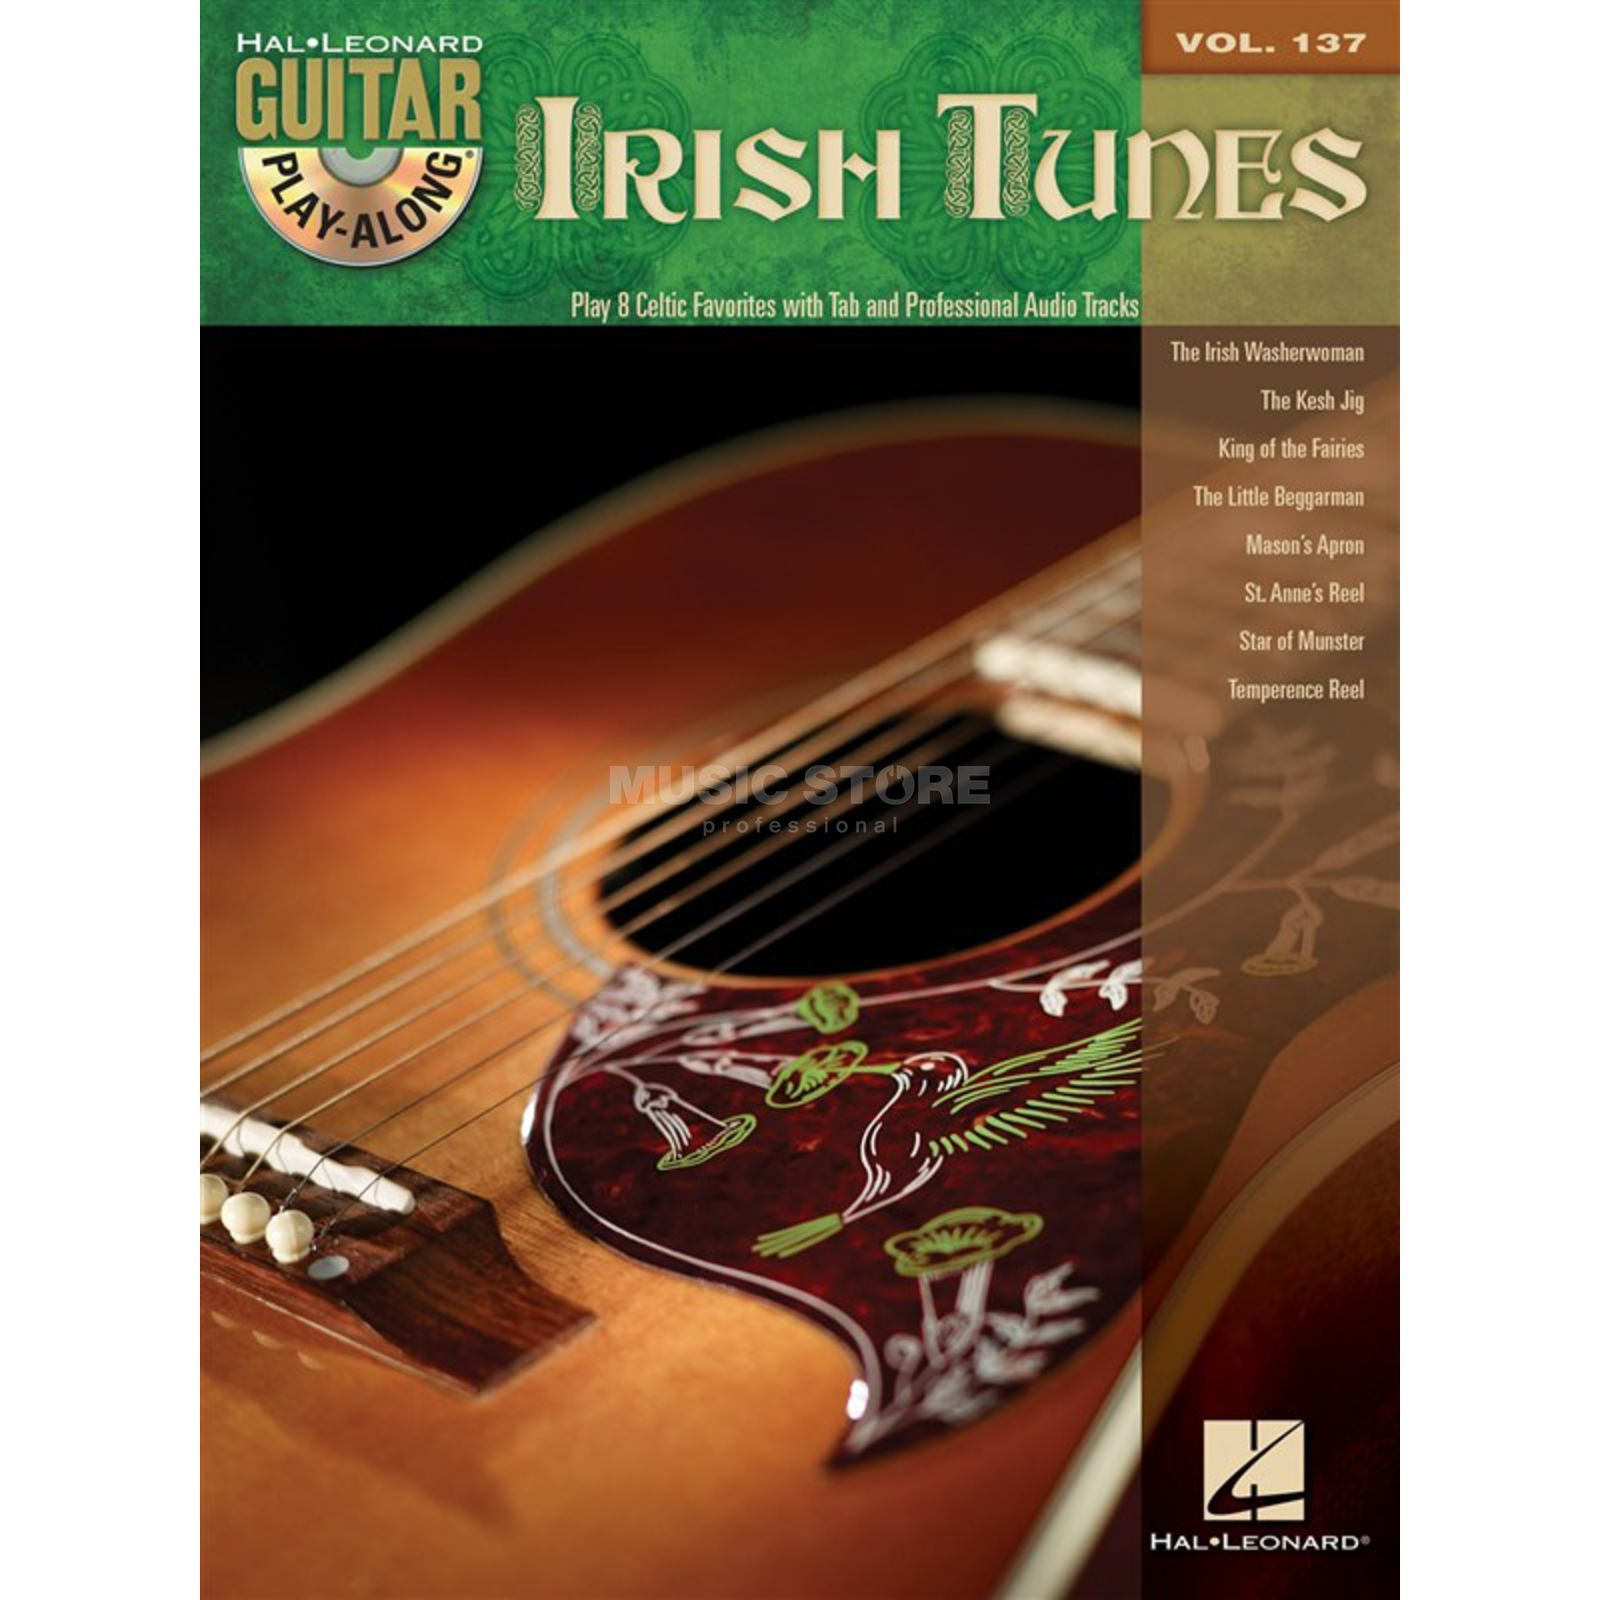 Hal Leonard Guitar Play-Along: Irish Tunes Vol. 137, TAB und CD Produktbild